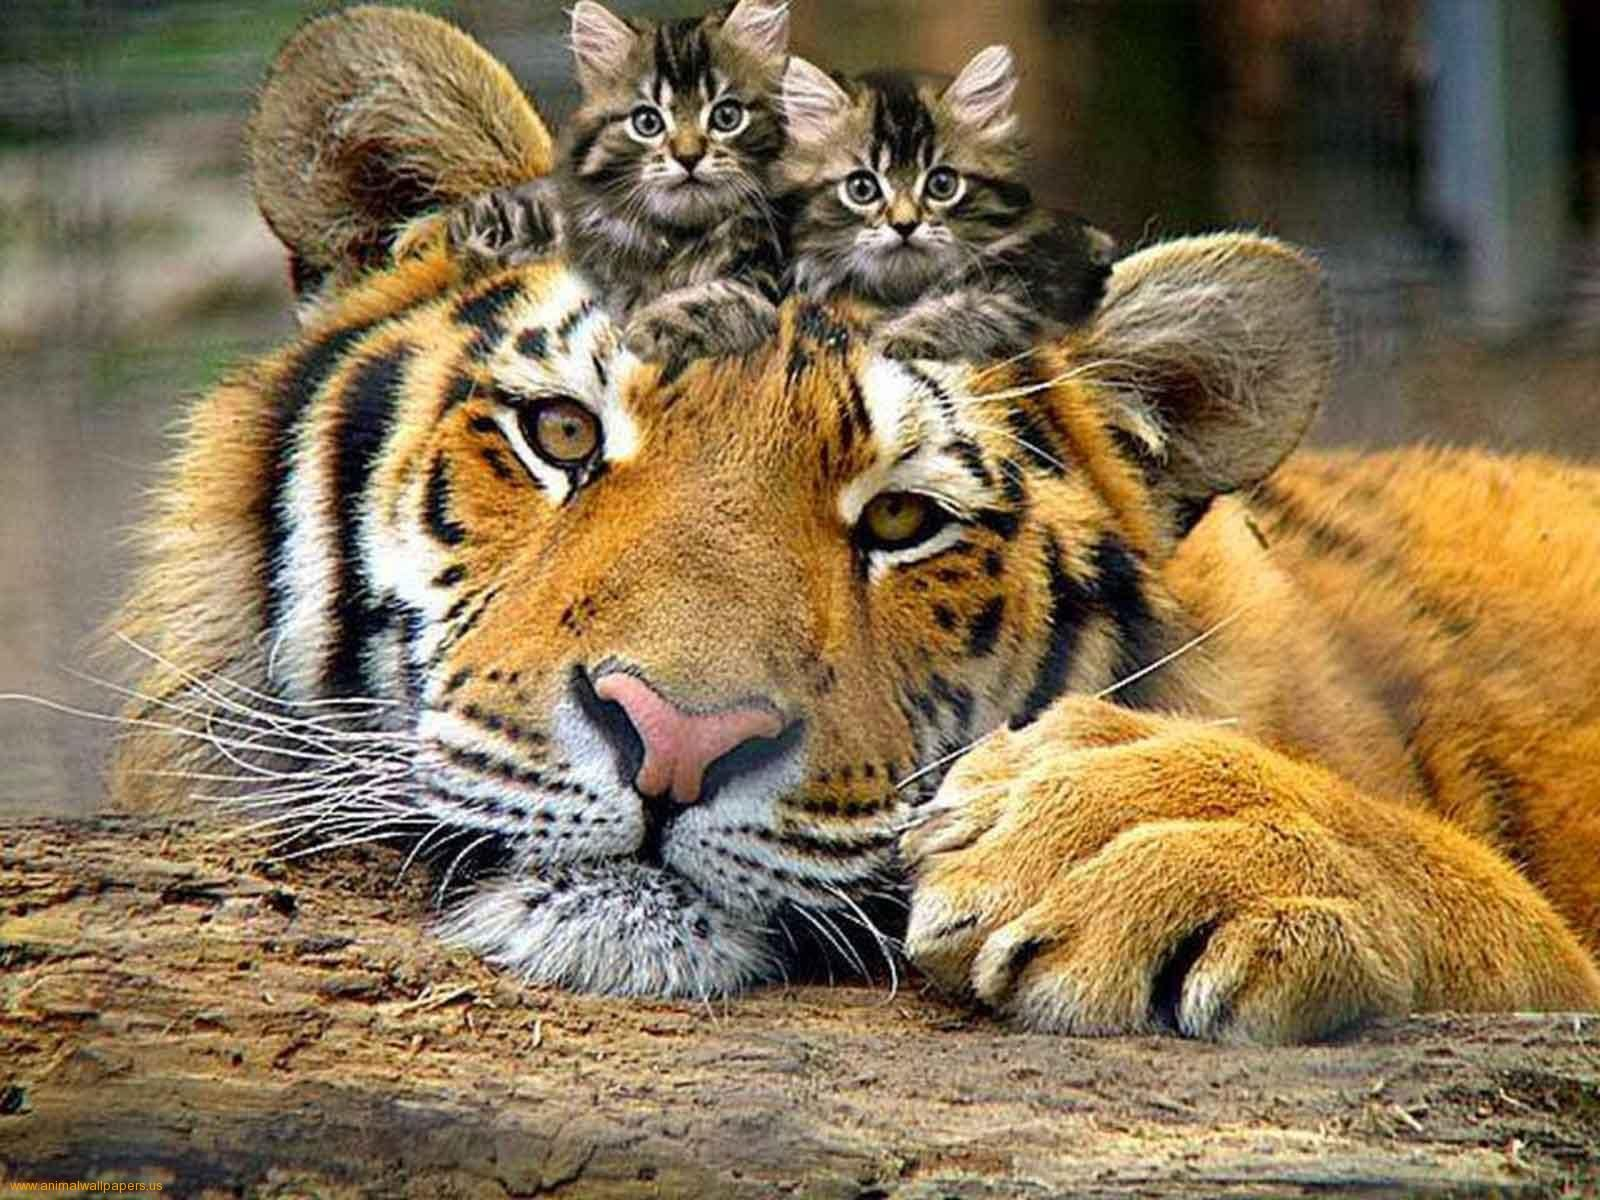 Tiger And Tigers Hd Wallpapers Top Images Of Animals Animals Beautiful Wild Cats Animals